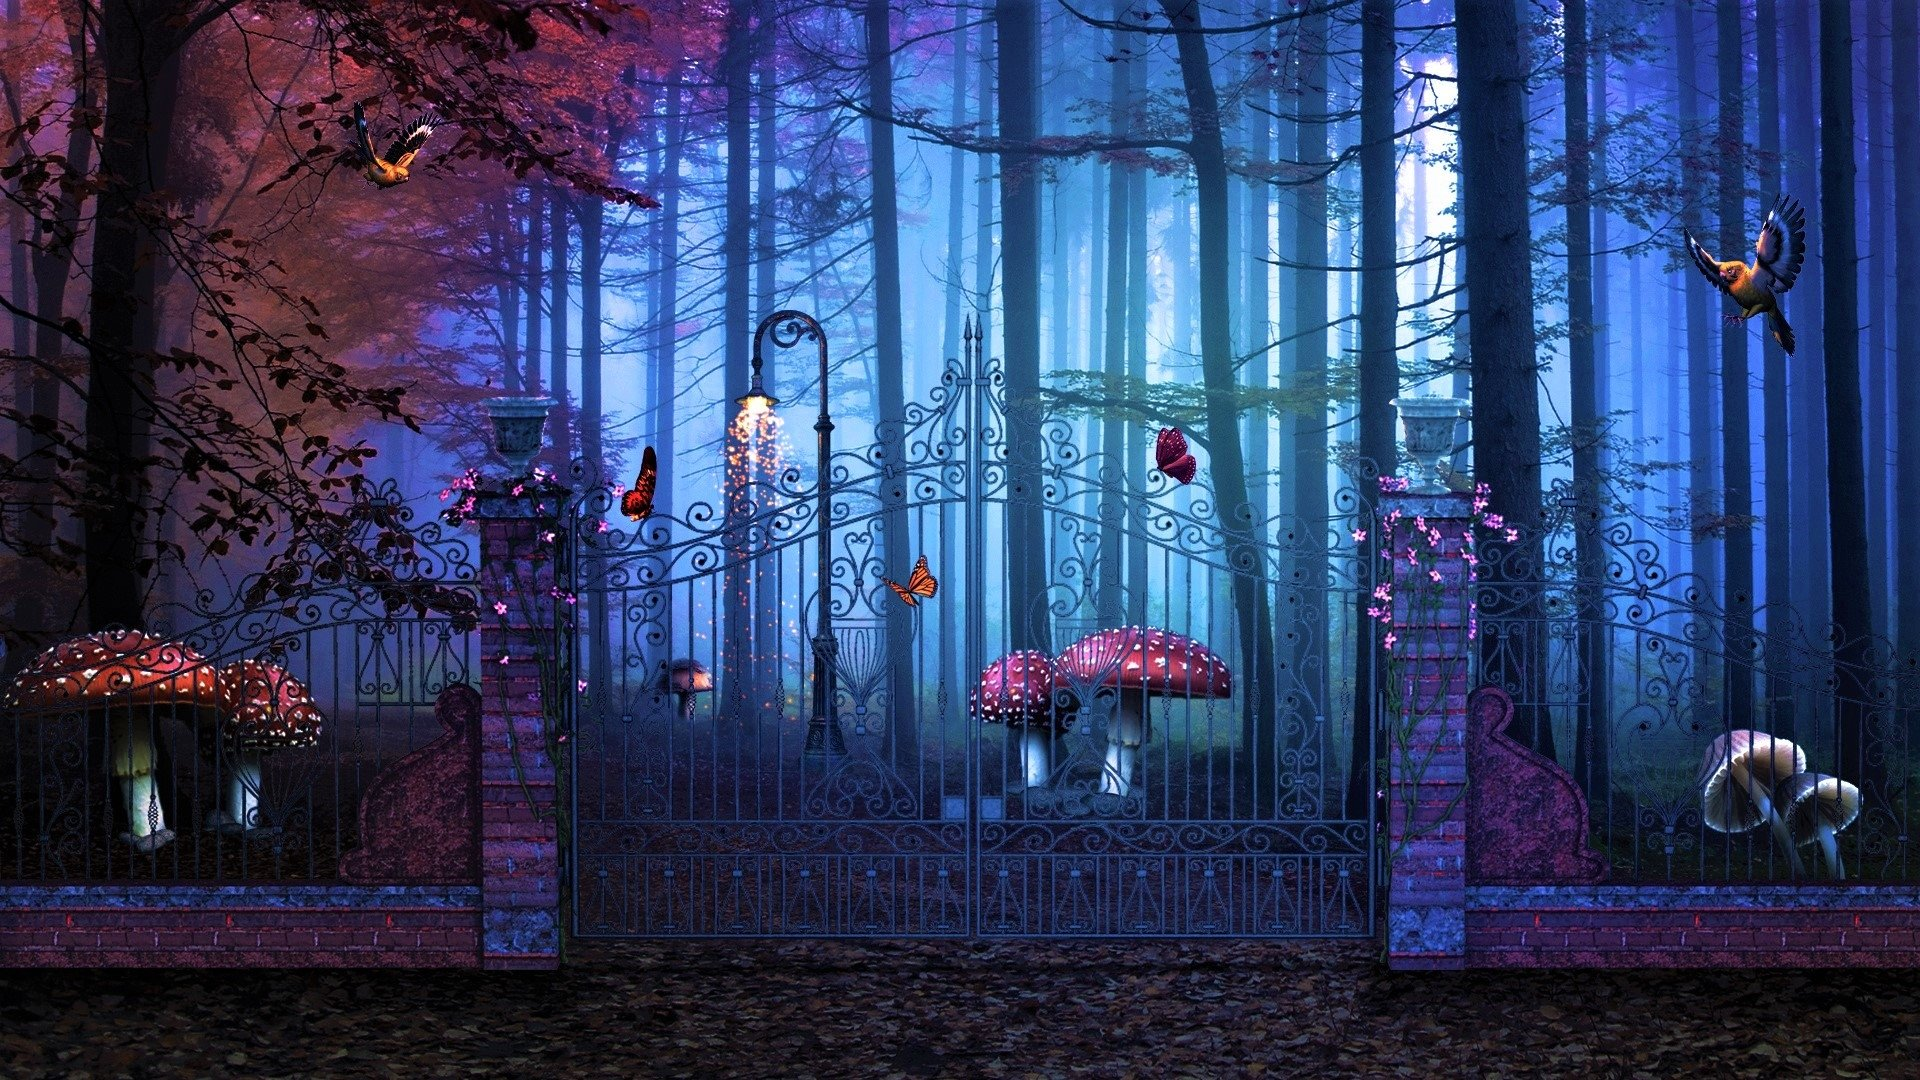 Fall Colors Mobile Wallpaper Gate To Enchanted Forest Hd Wallpaper Background Image